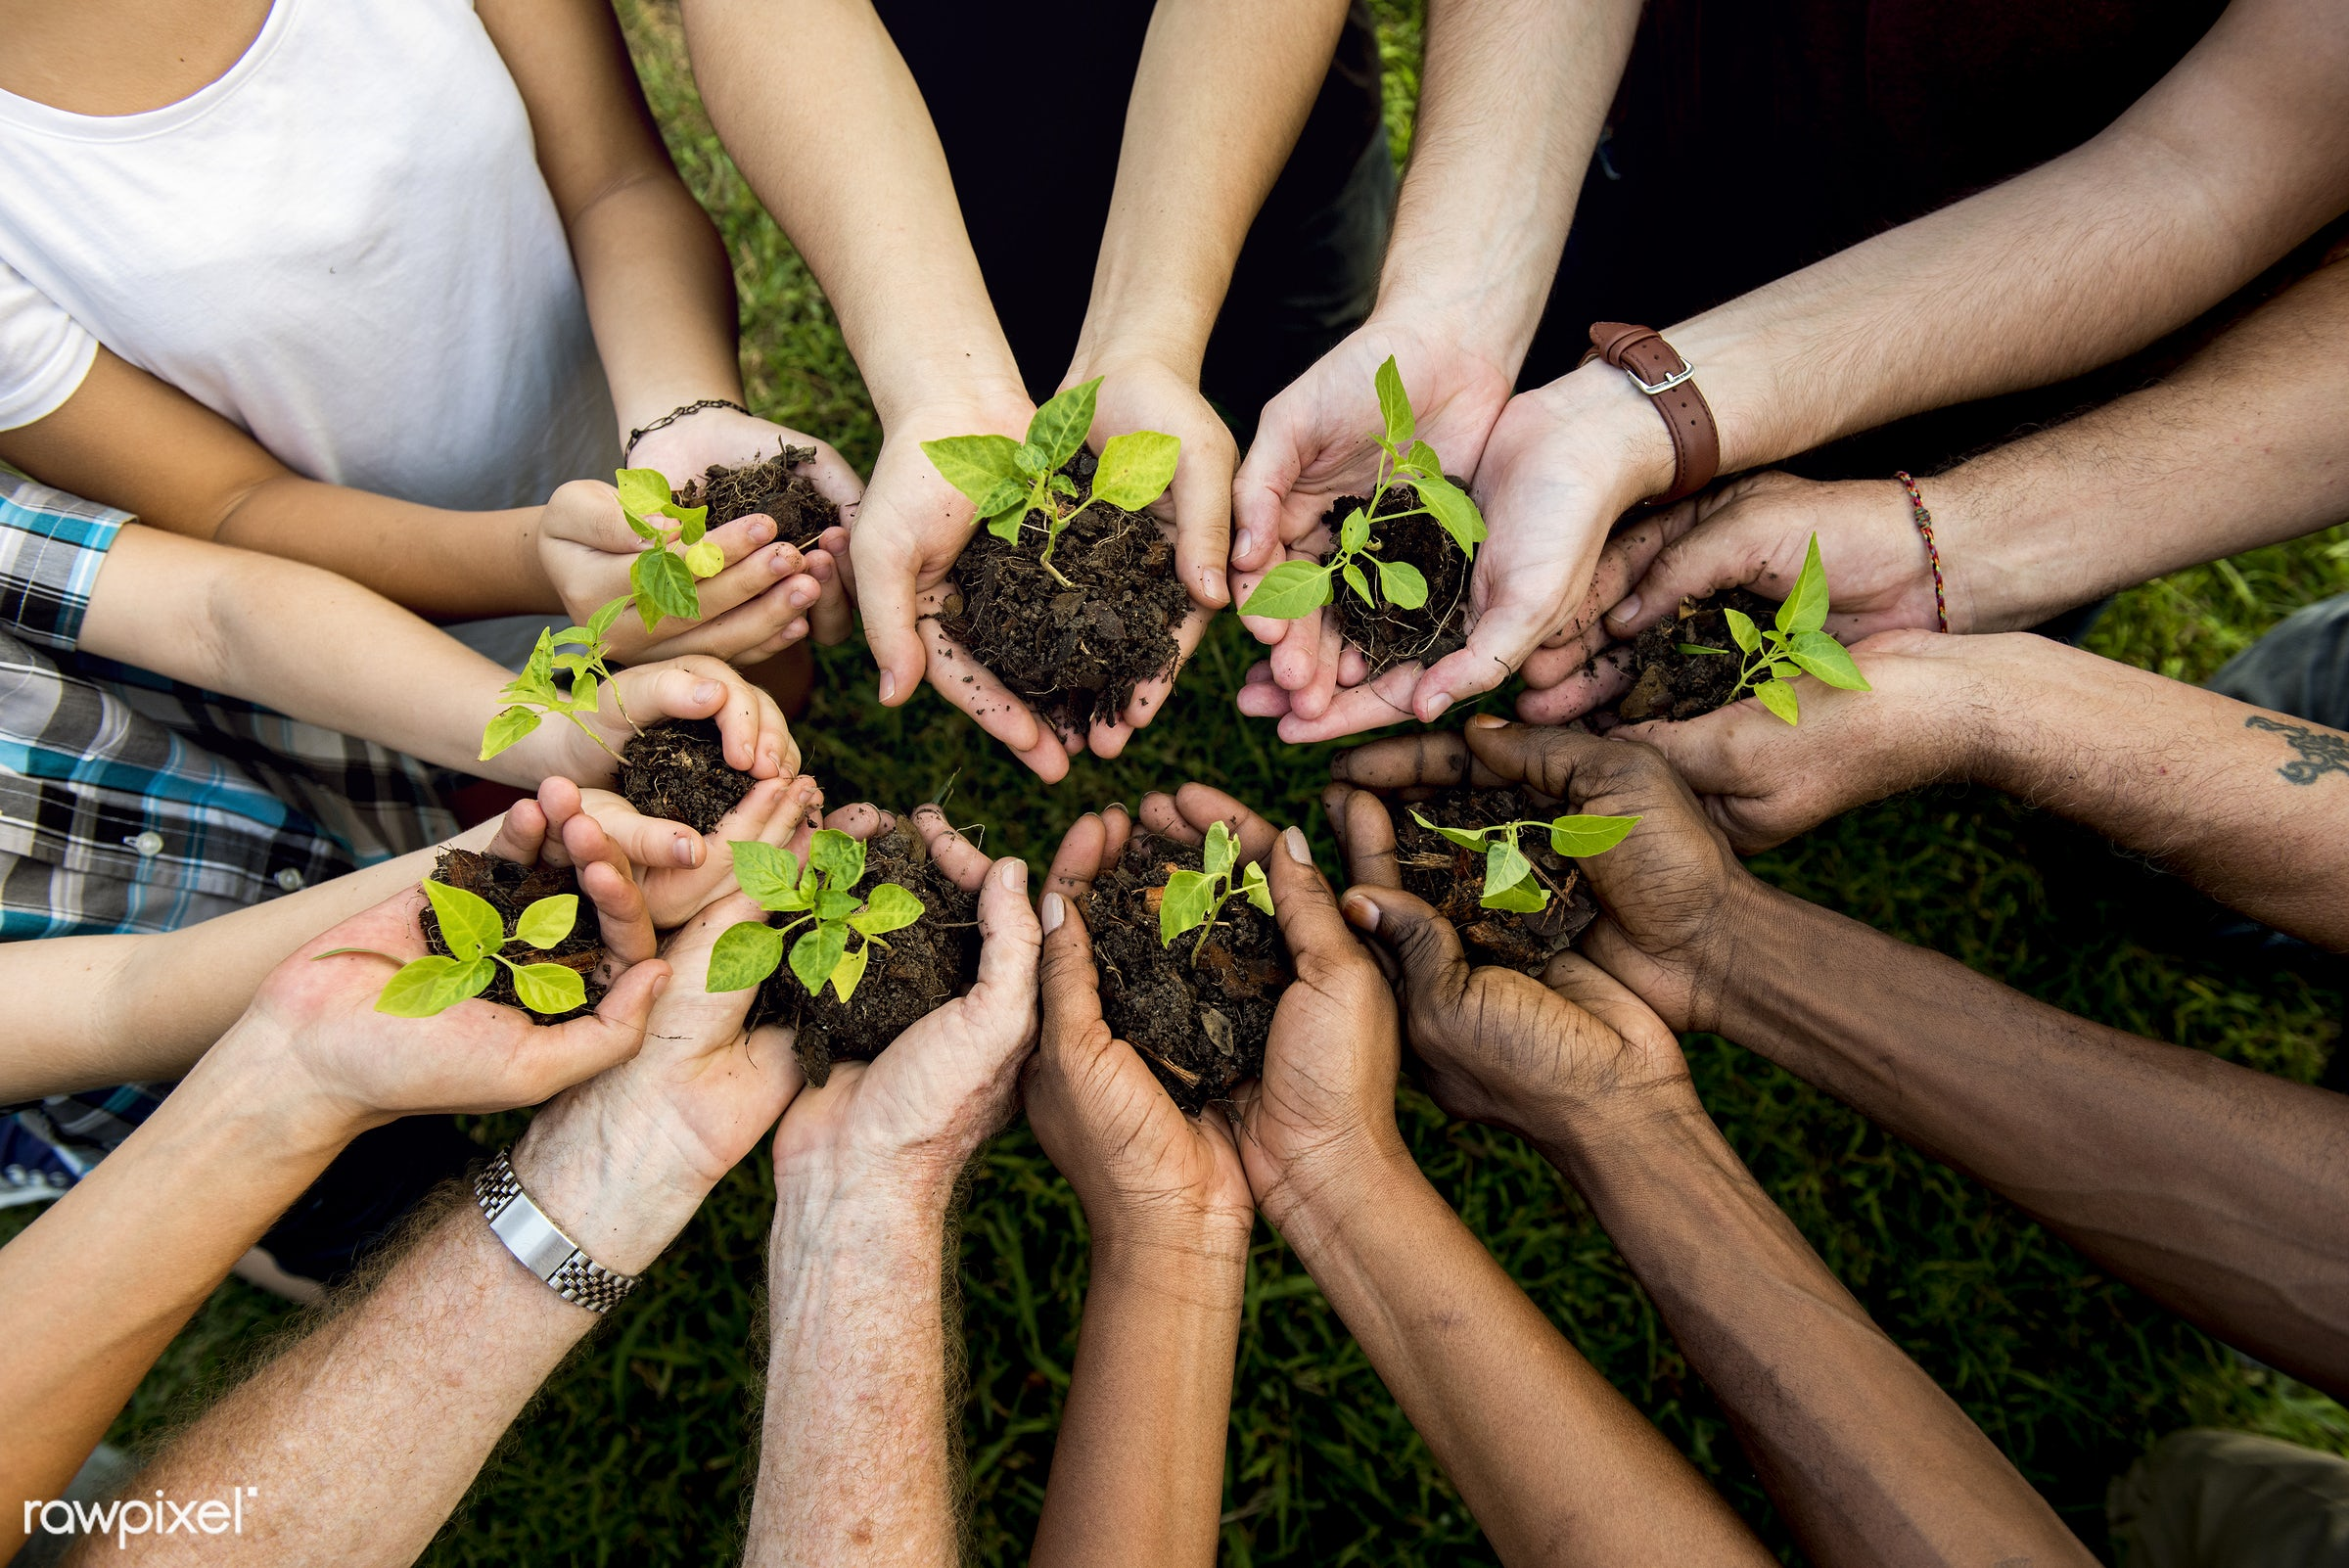 person, holding, leaves, people, together, kid, help, tree, nature, woman, friendship, sustainability, dirt, responsibility...